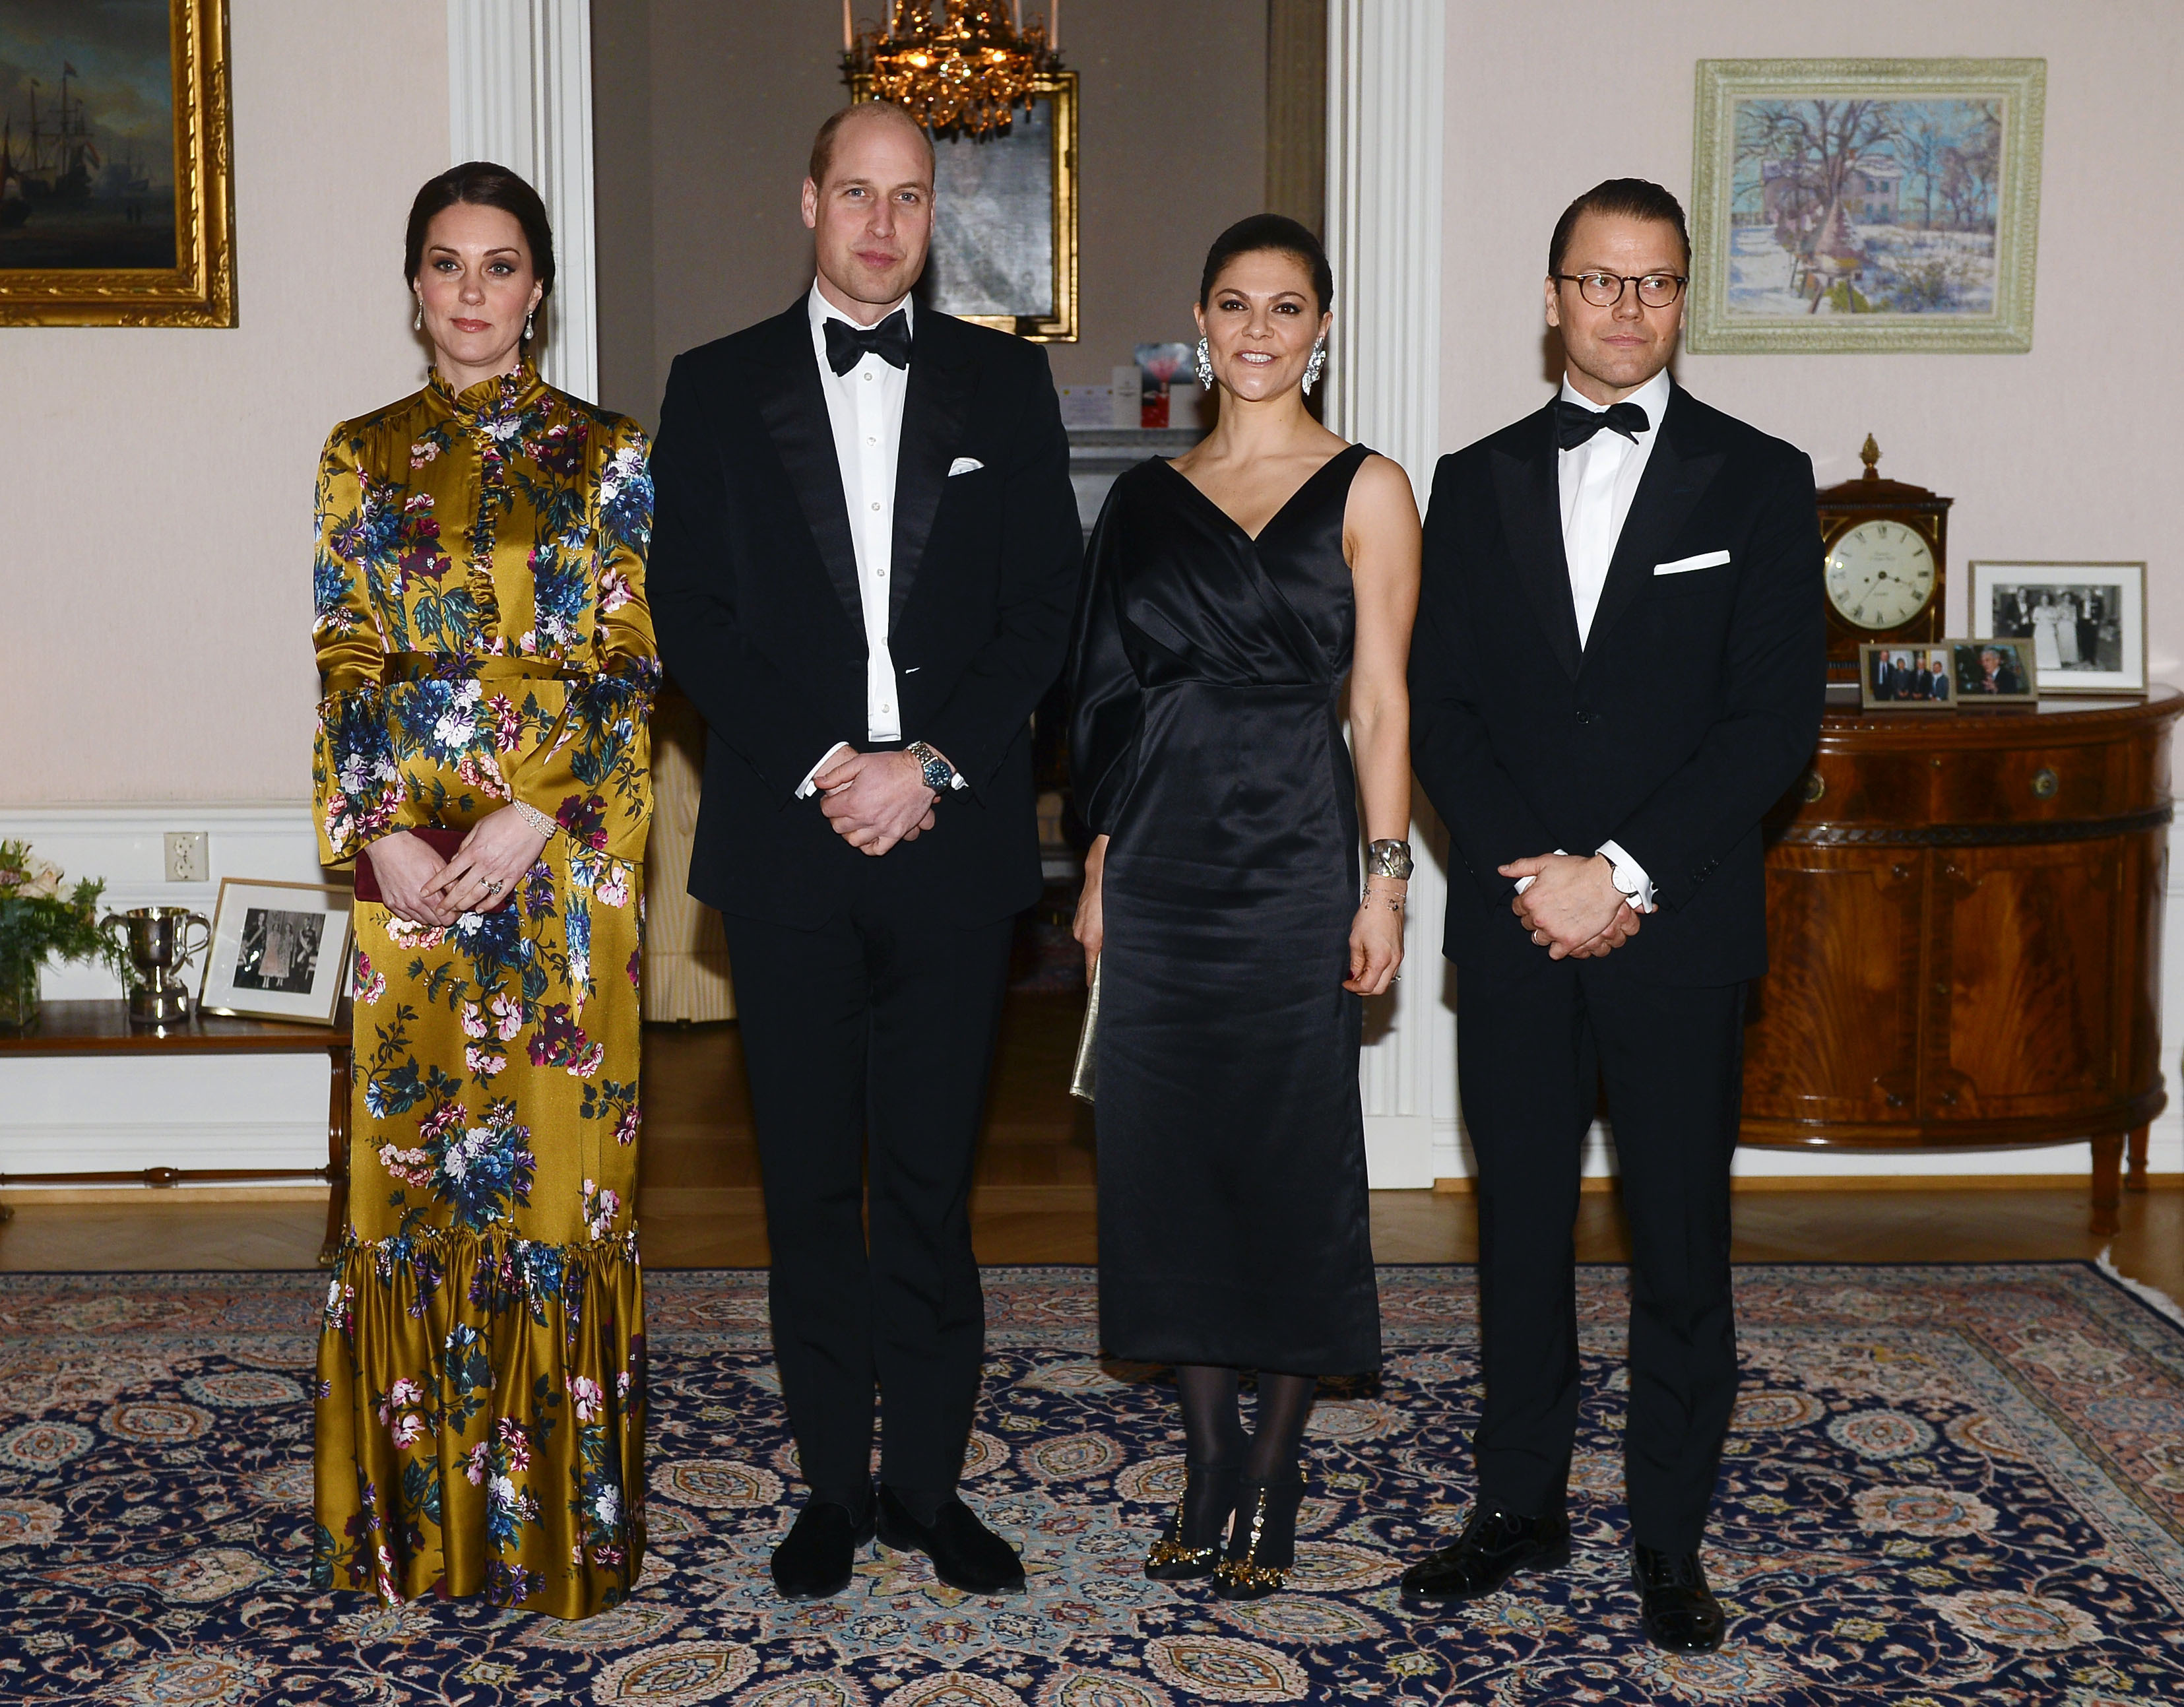 The Duke and Duchess of Cambridge accompanied by Crown Princess Victoria and Prince Daniel of Sweden at a dinner hosted by the British ambassador in Stockholm on the first day of their visit to Sweden